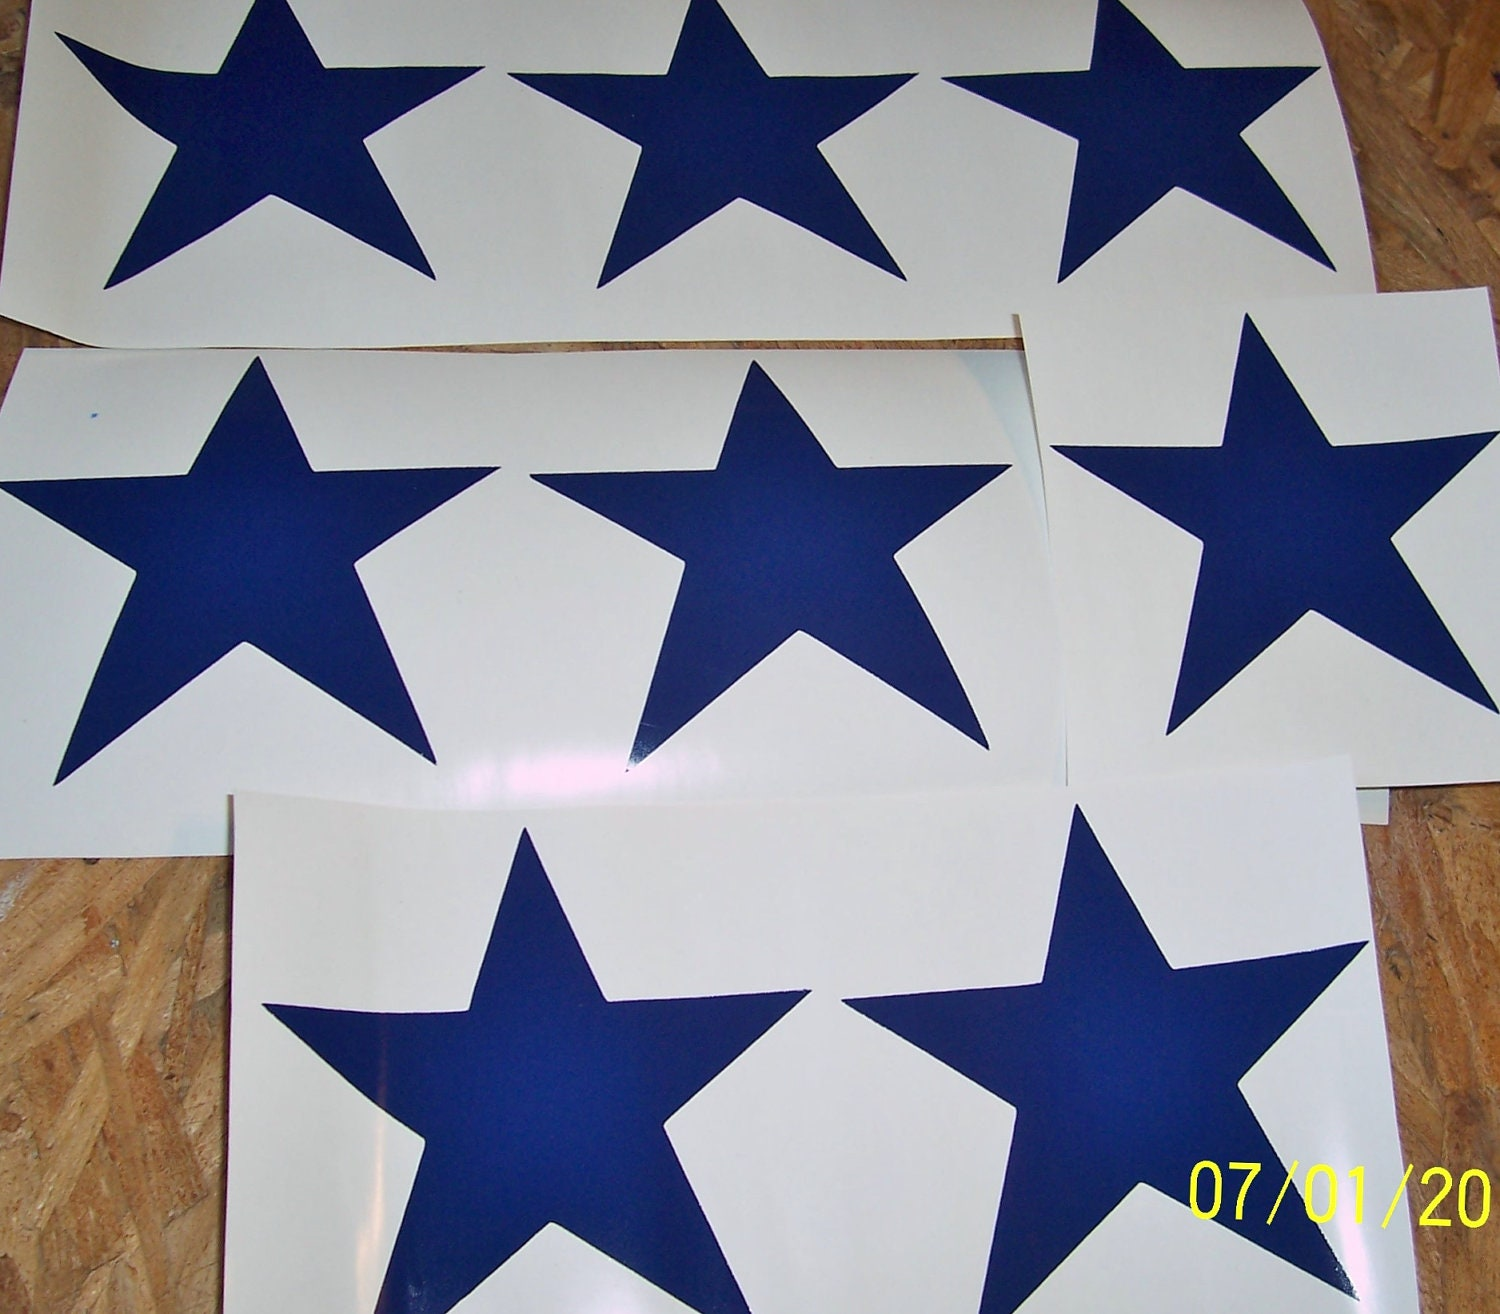 Blue Star Wall Decor : Navy blue vinyl star decals wall decal